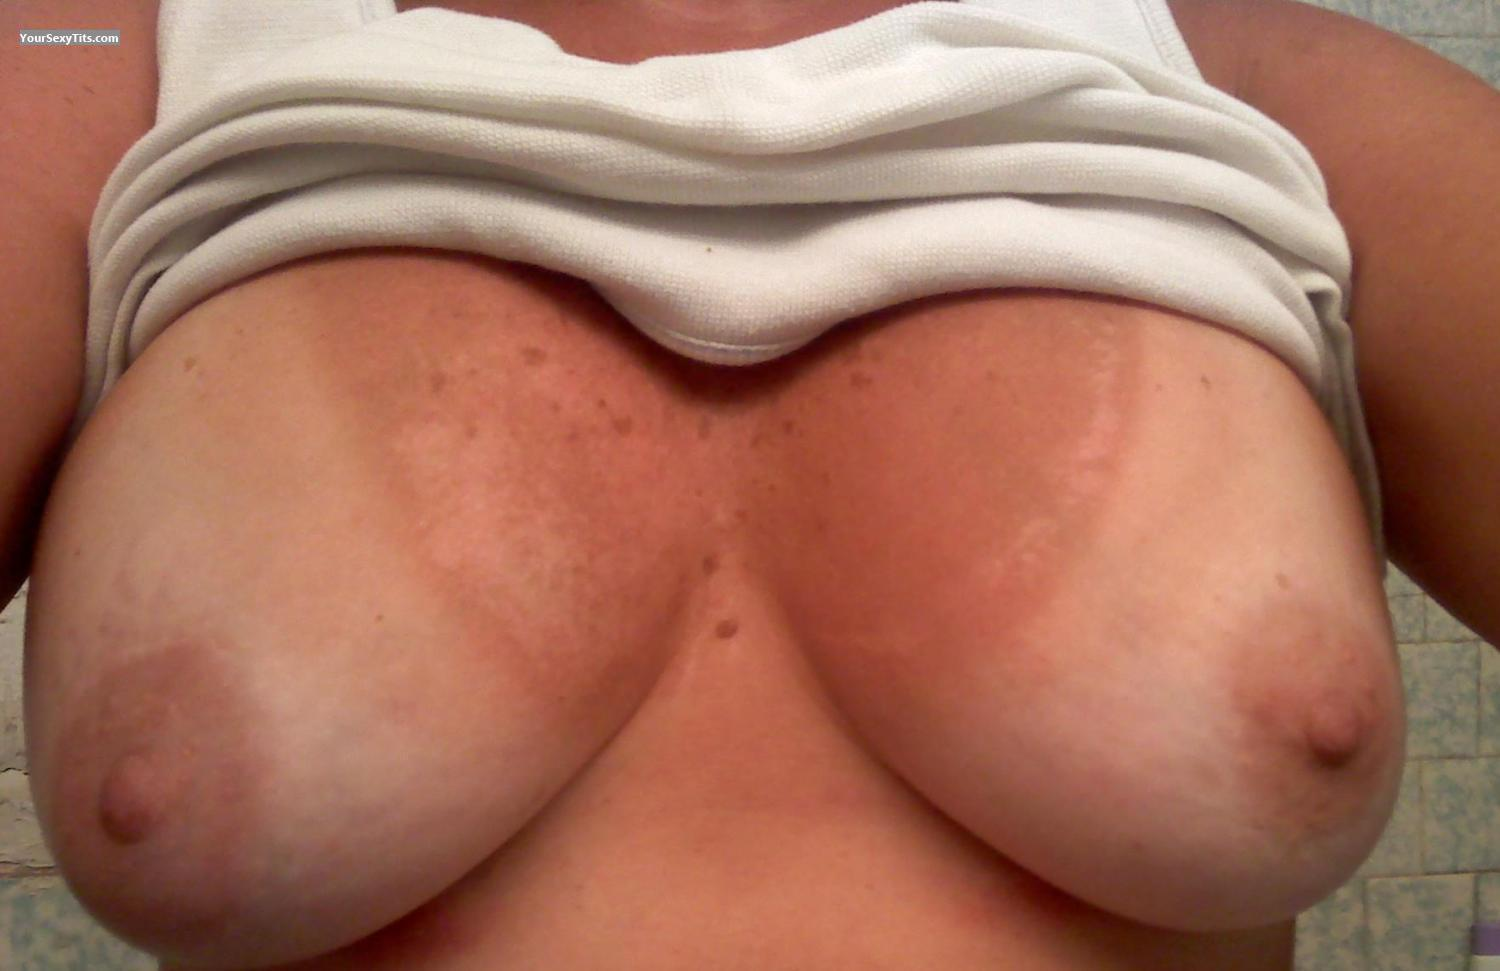 Tit Flash: My Medium Tits (Selfie) - RIGirl from United States